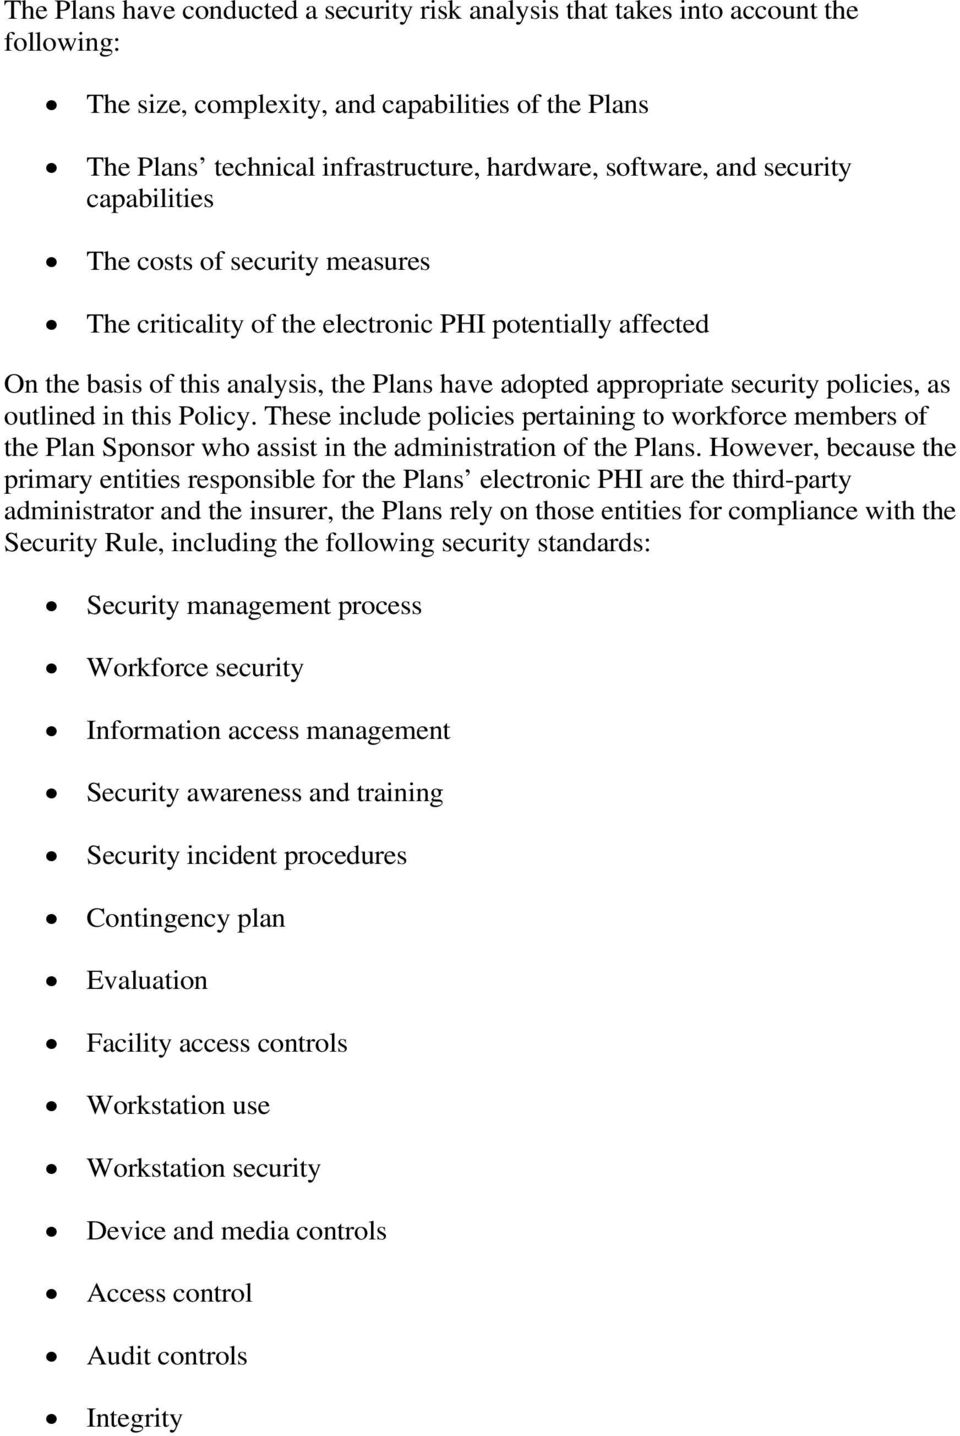 policies, as outlined in this Policy. These include policies pertaining to workforce members of the Plan Sponsor who assist in the administration of the Plans.